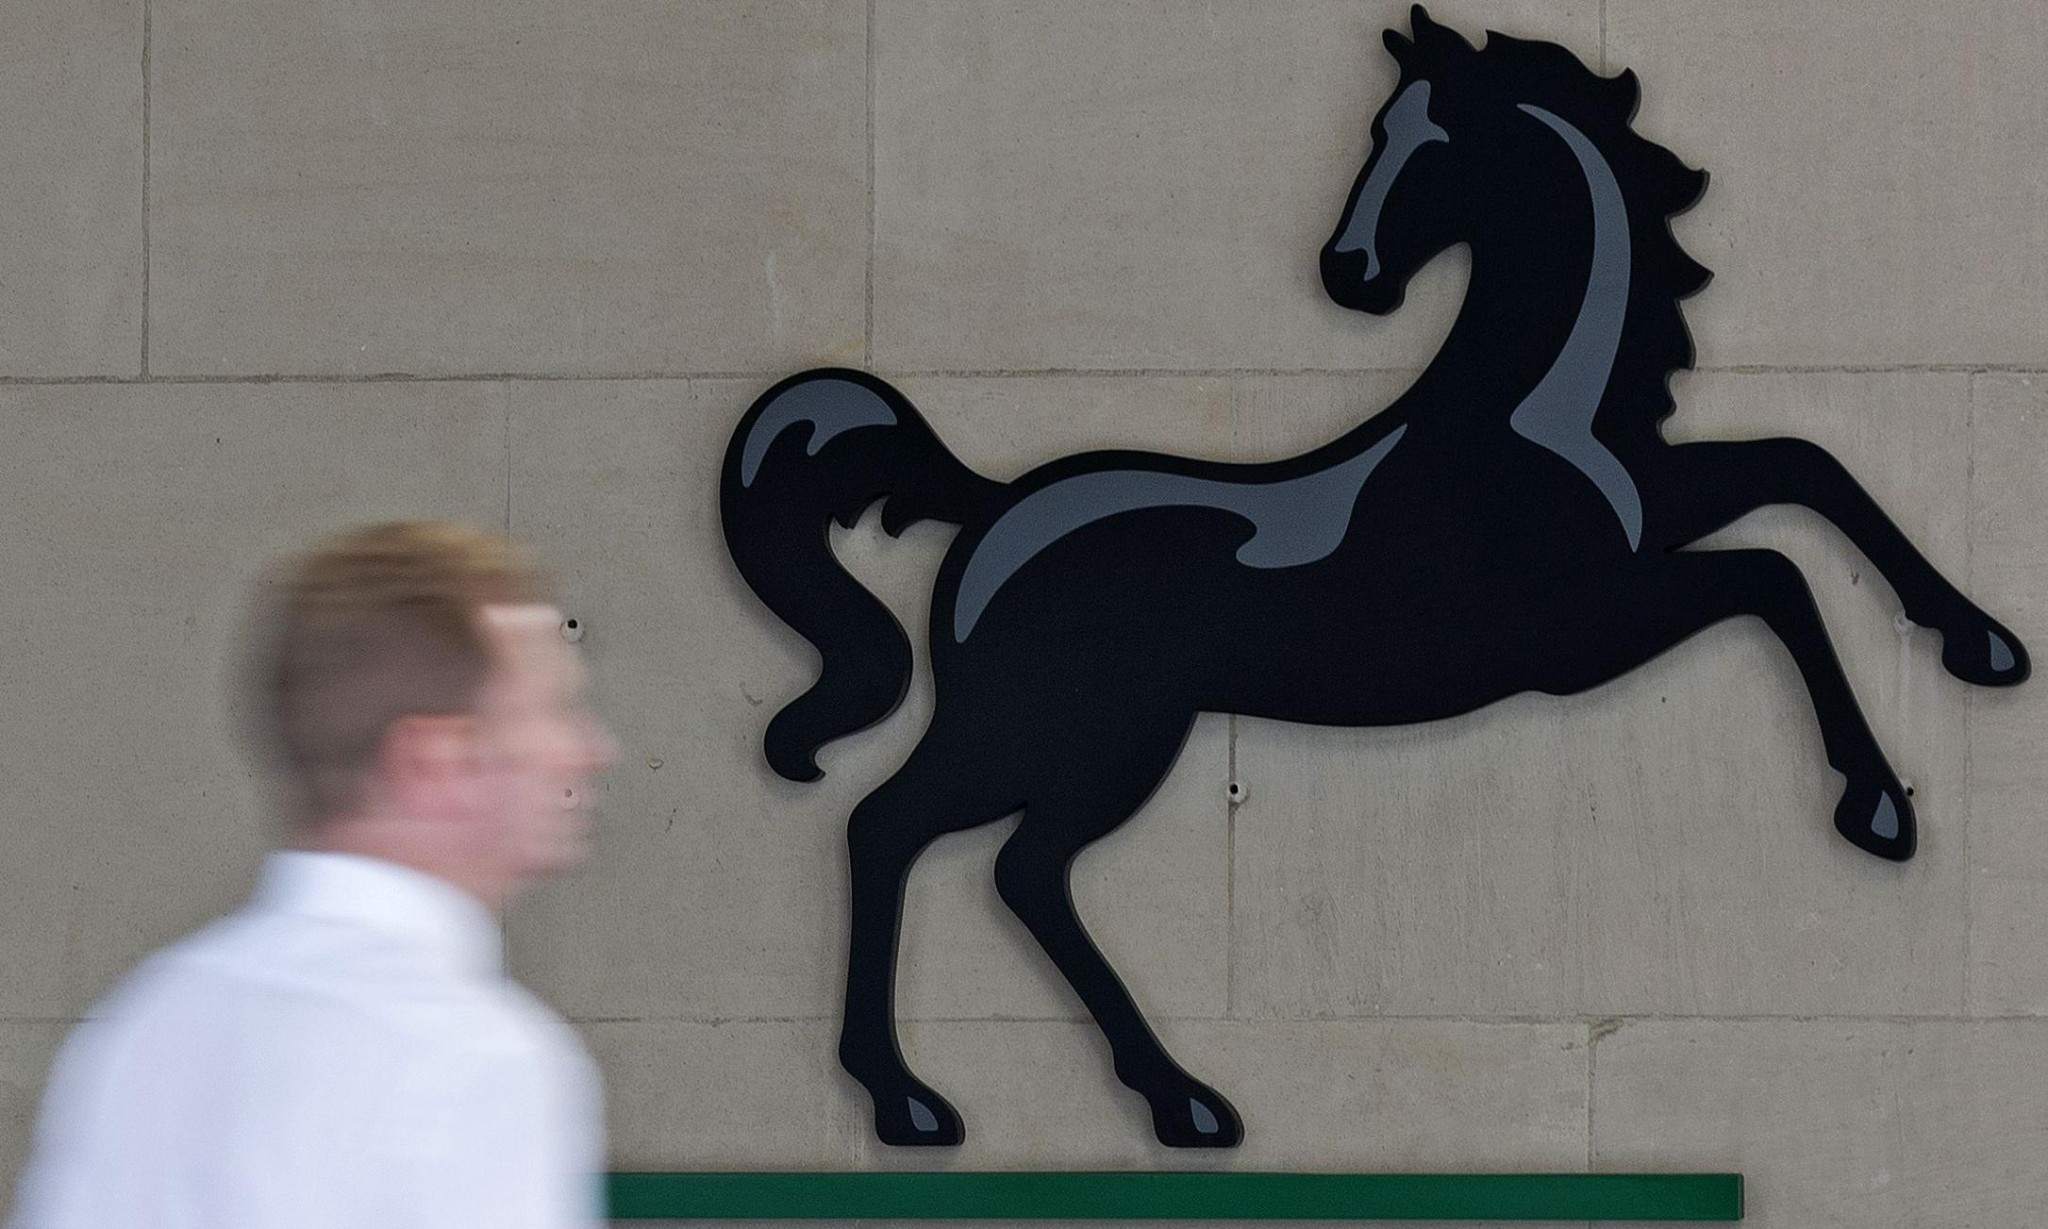 Lloyds bank bailout repaid in full, says Philip Hammond